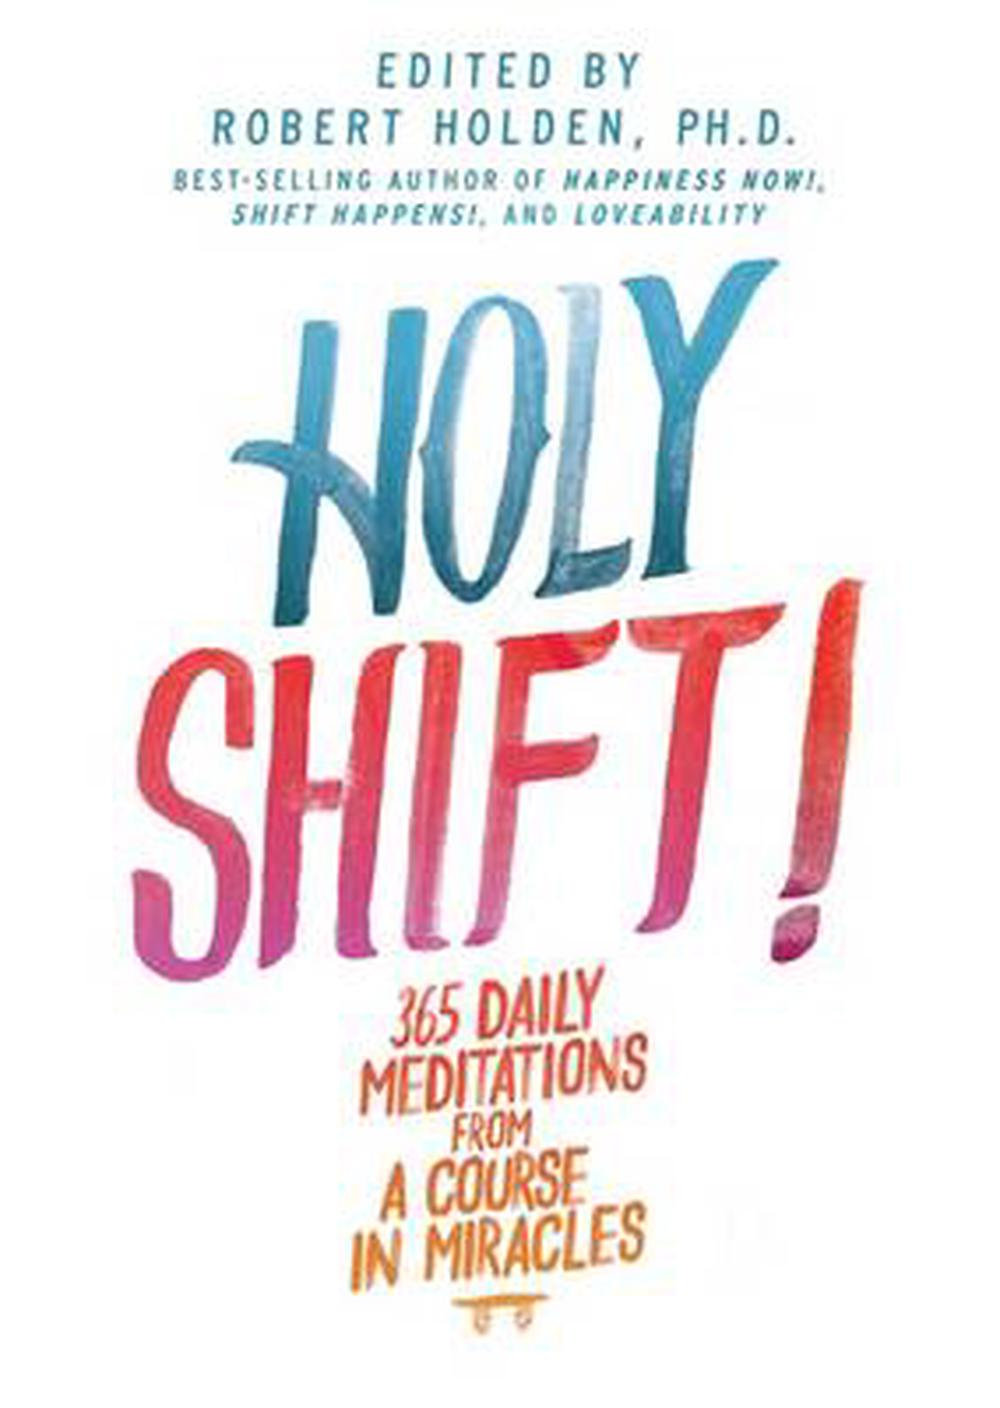 Holy Shift!: 365 Daily Meditations from a Course in Miracles